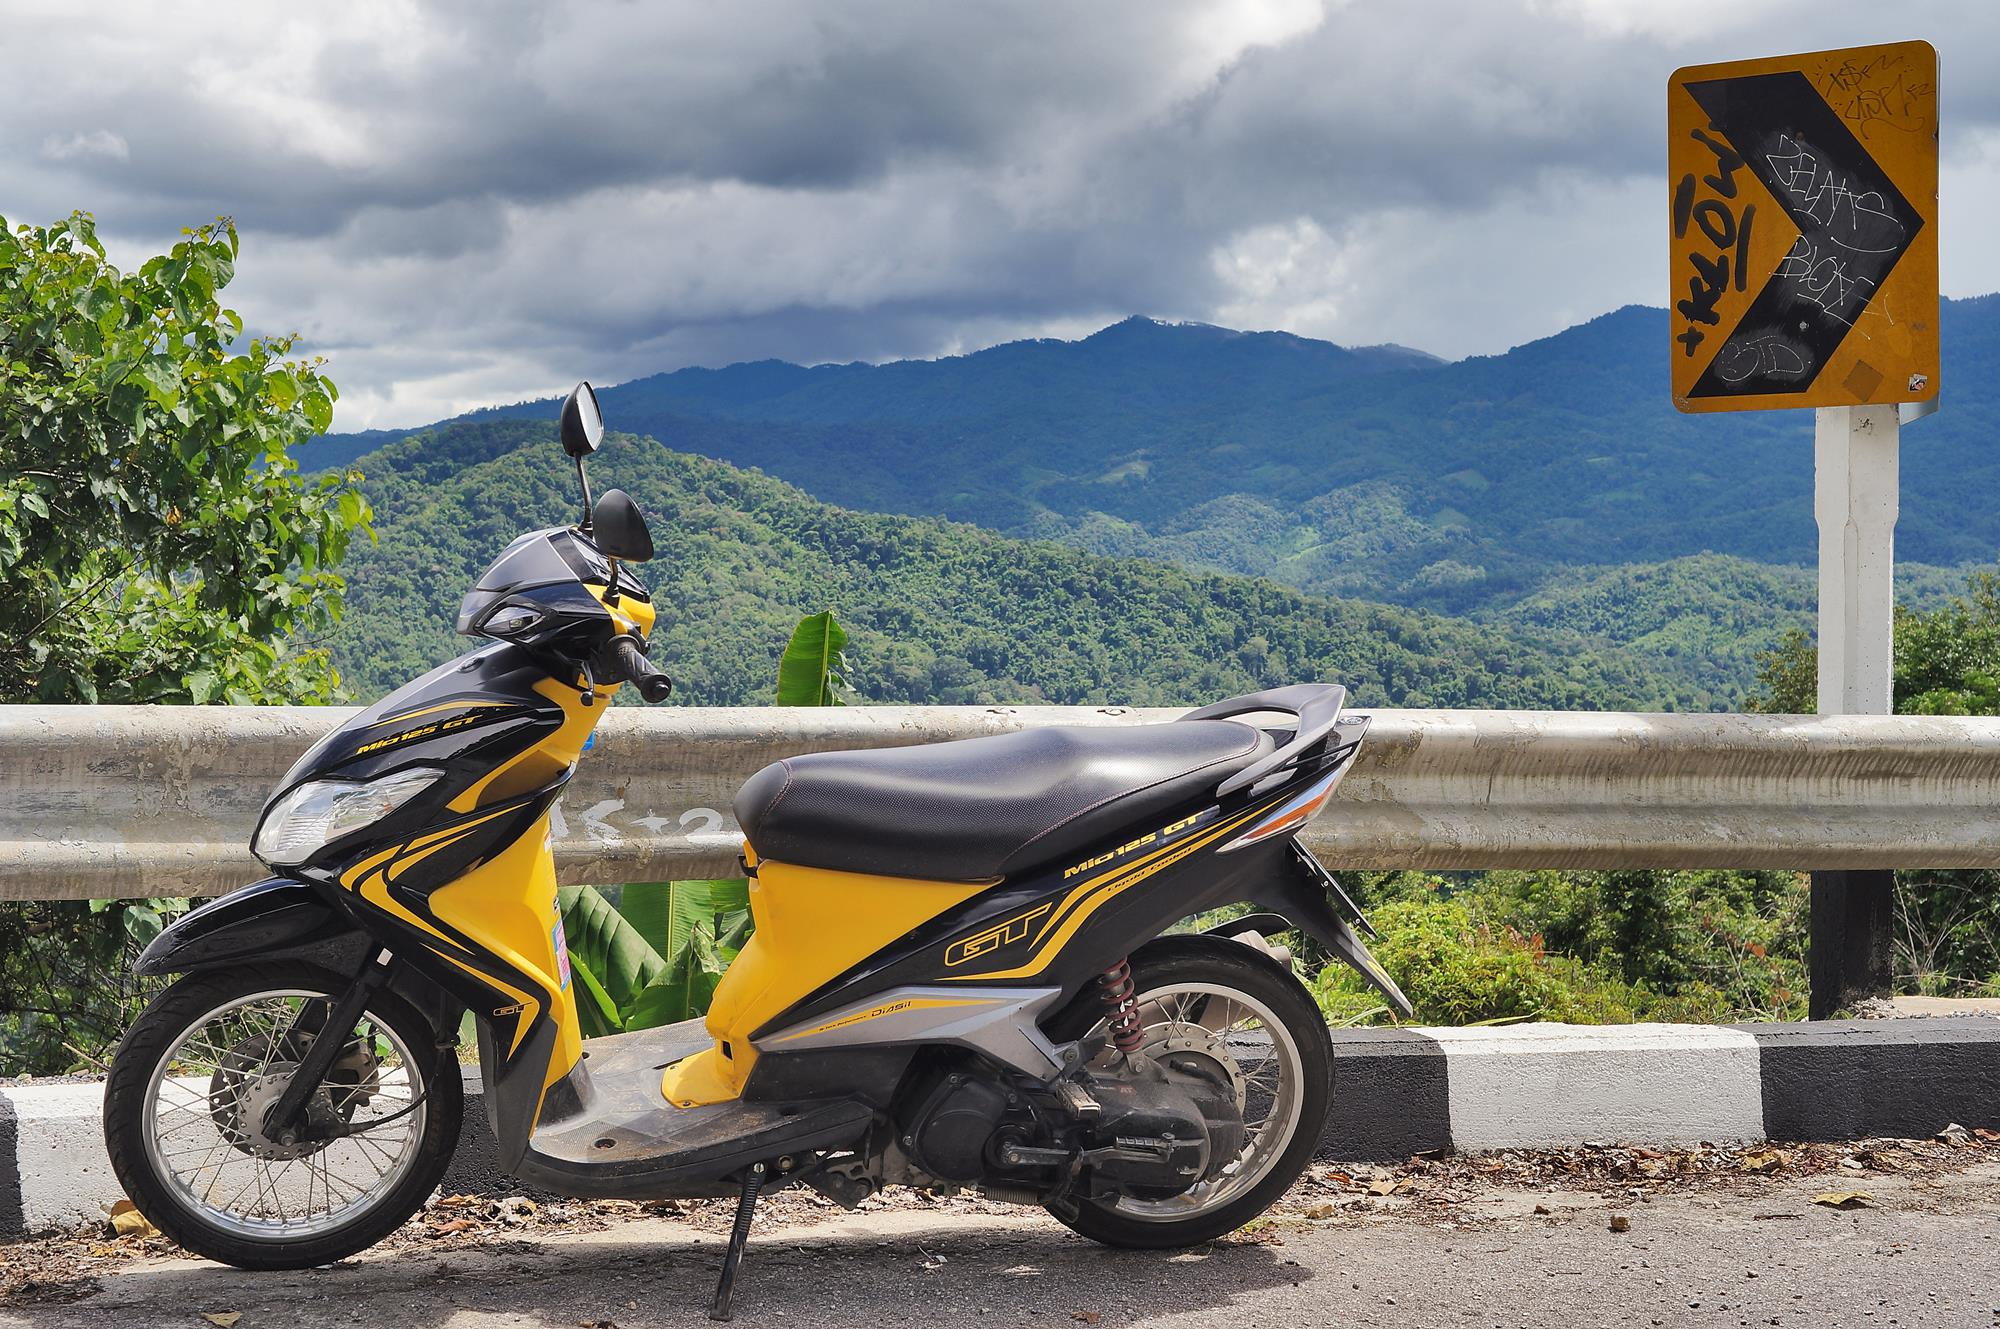 Chiang Mai to Pai on the Wasp